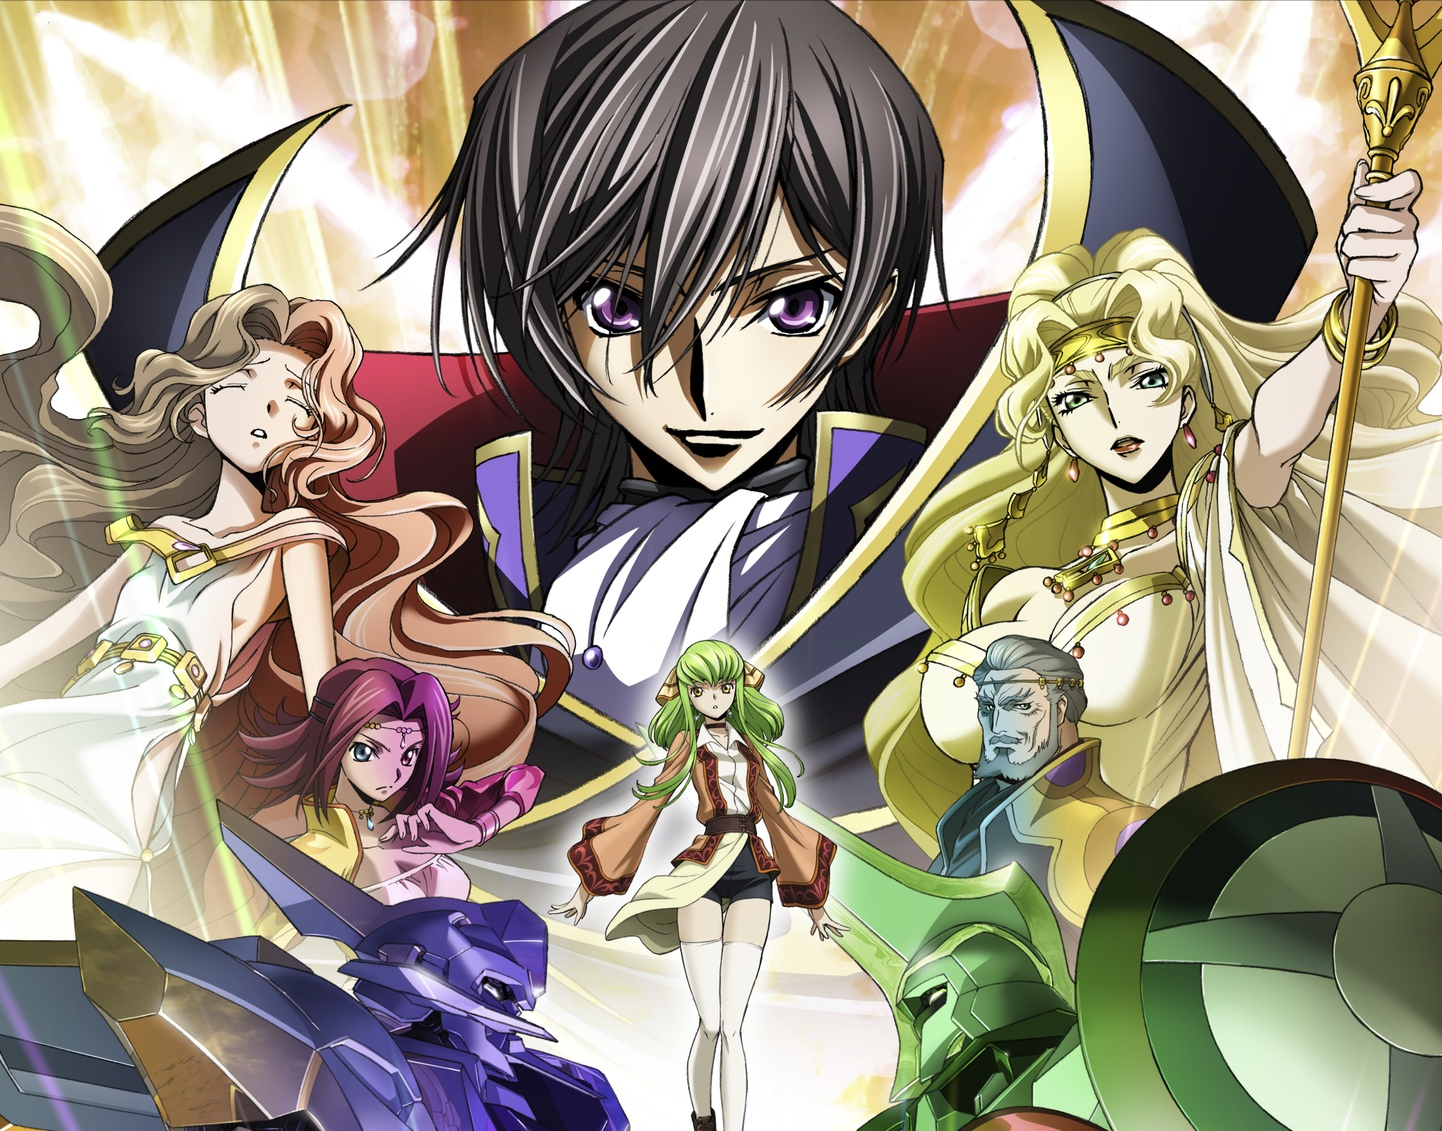 © SUNRISE / PROJECT L-GEASS Character Design ©2006-2018 CLAMP・ST